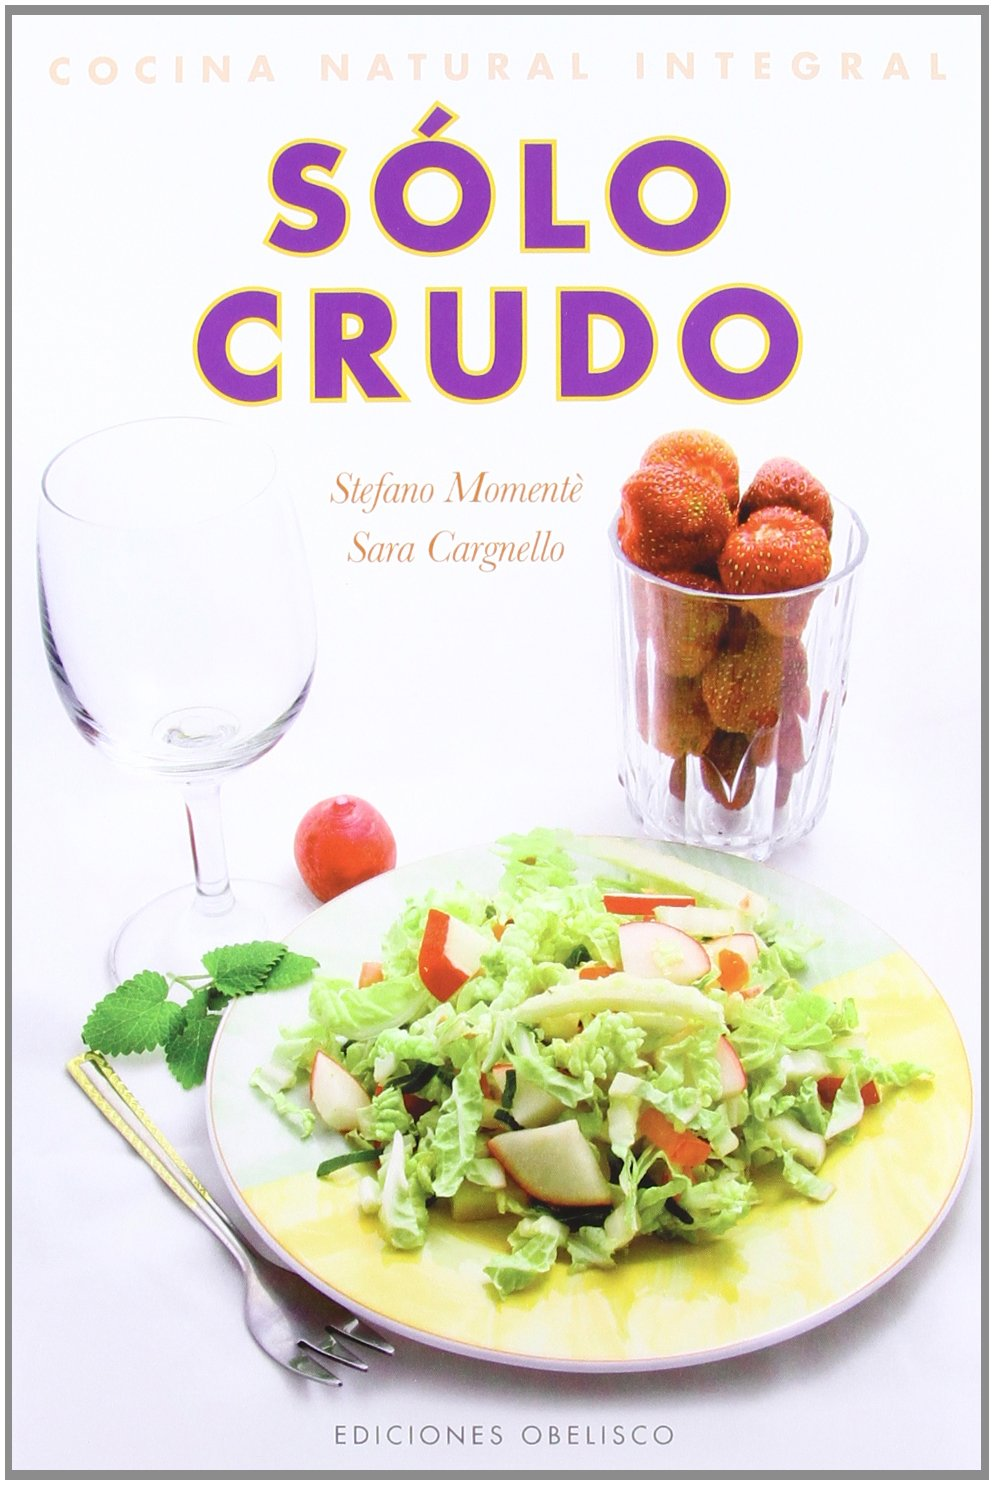 Solo crudo (Spanish Edition) by Brand: Obelisco